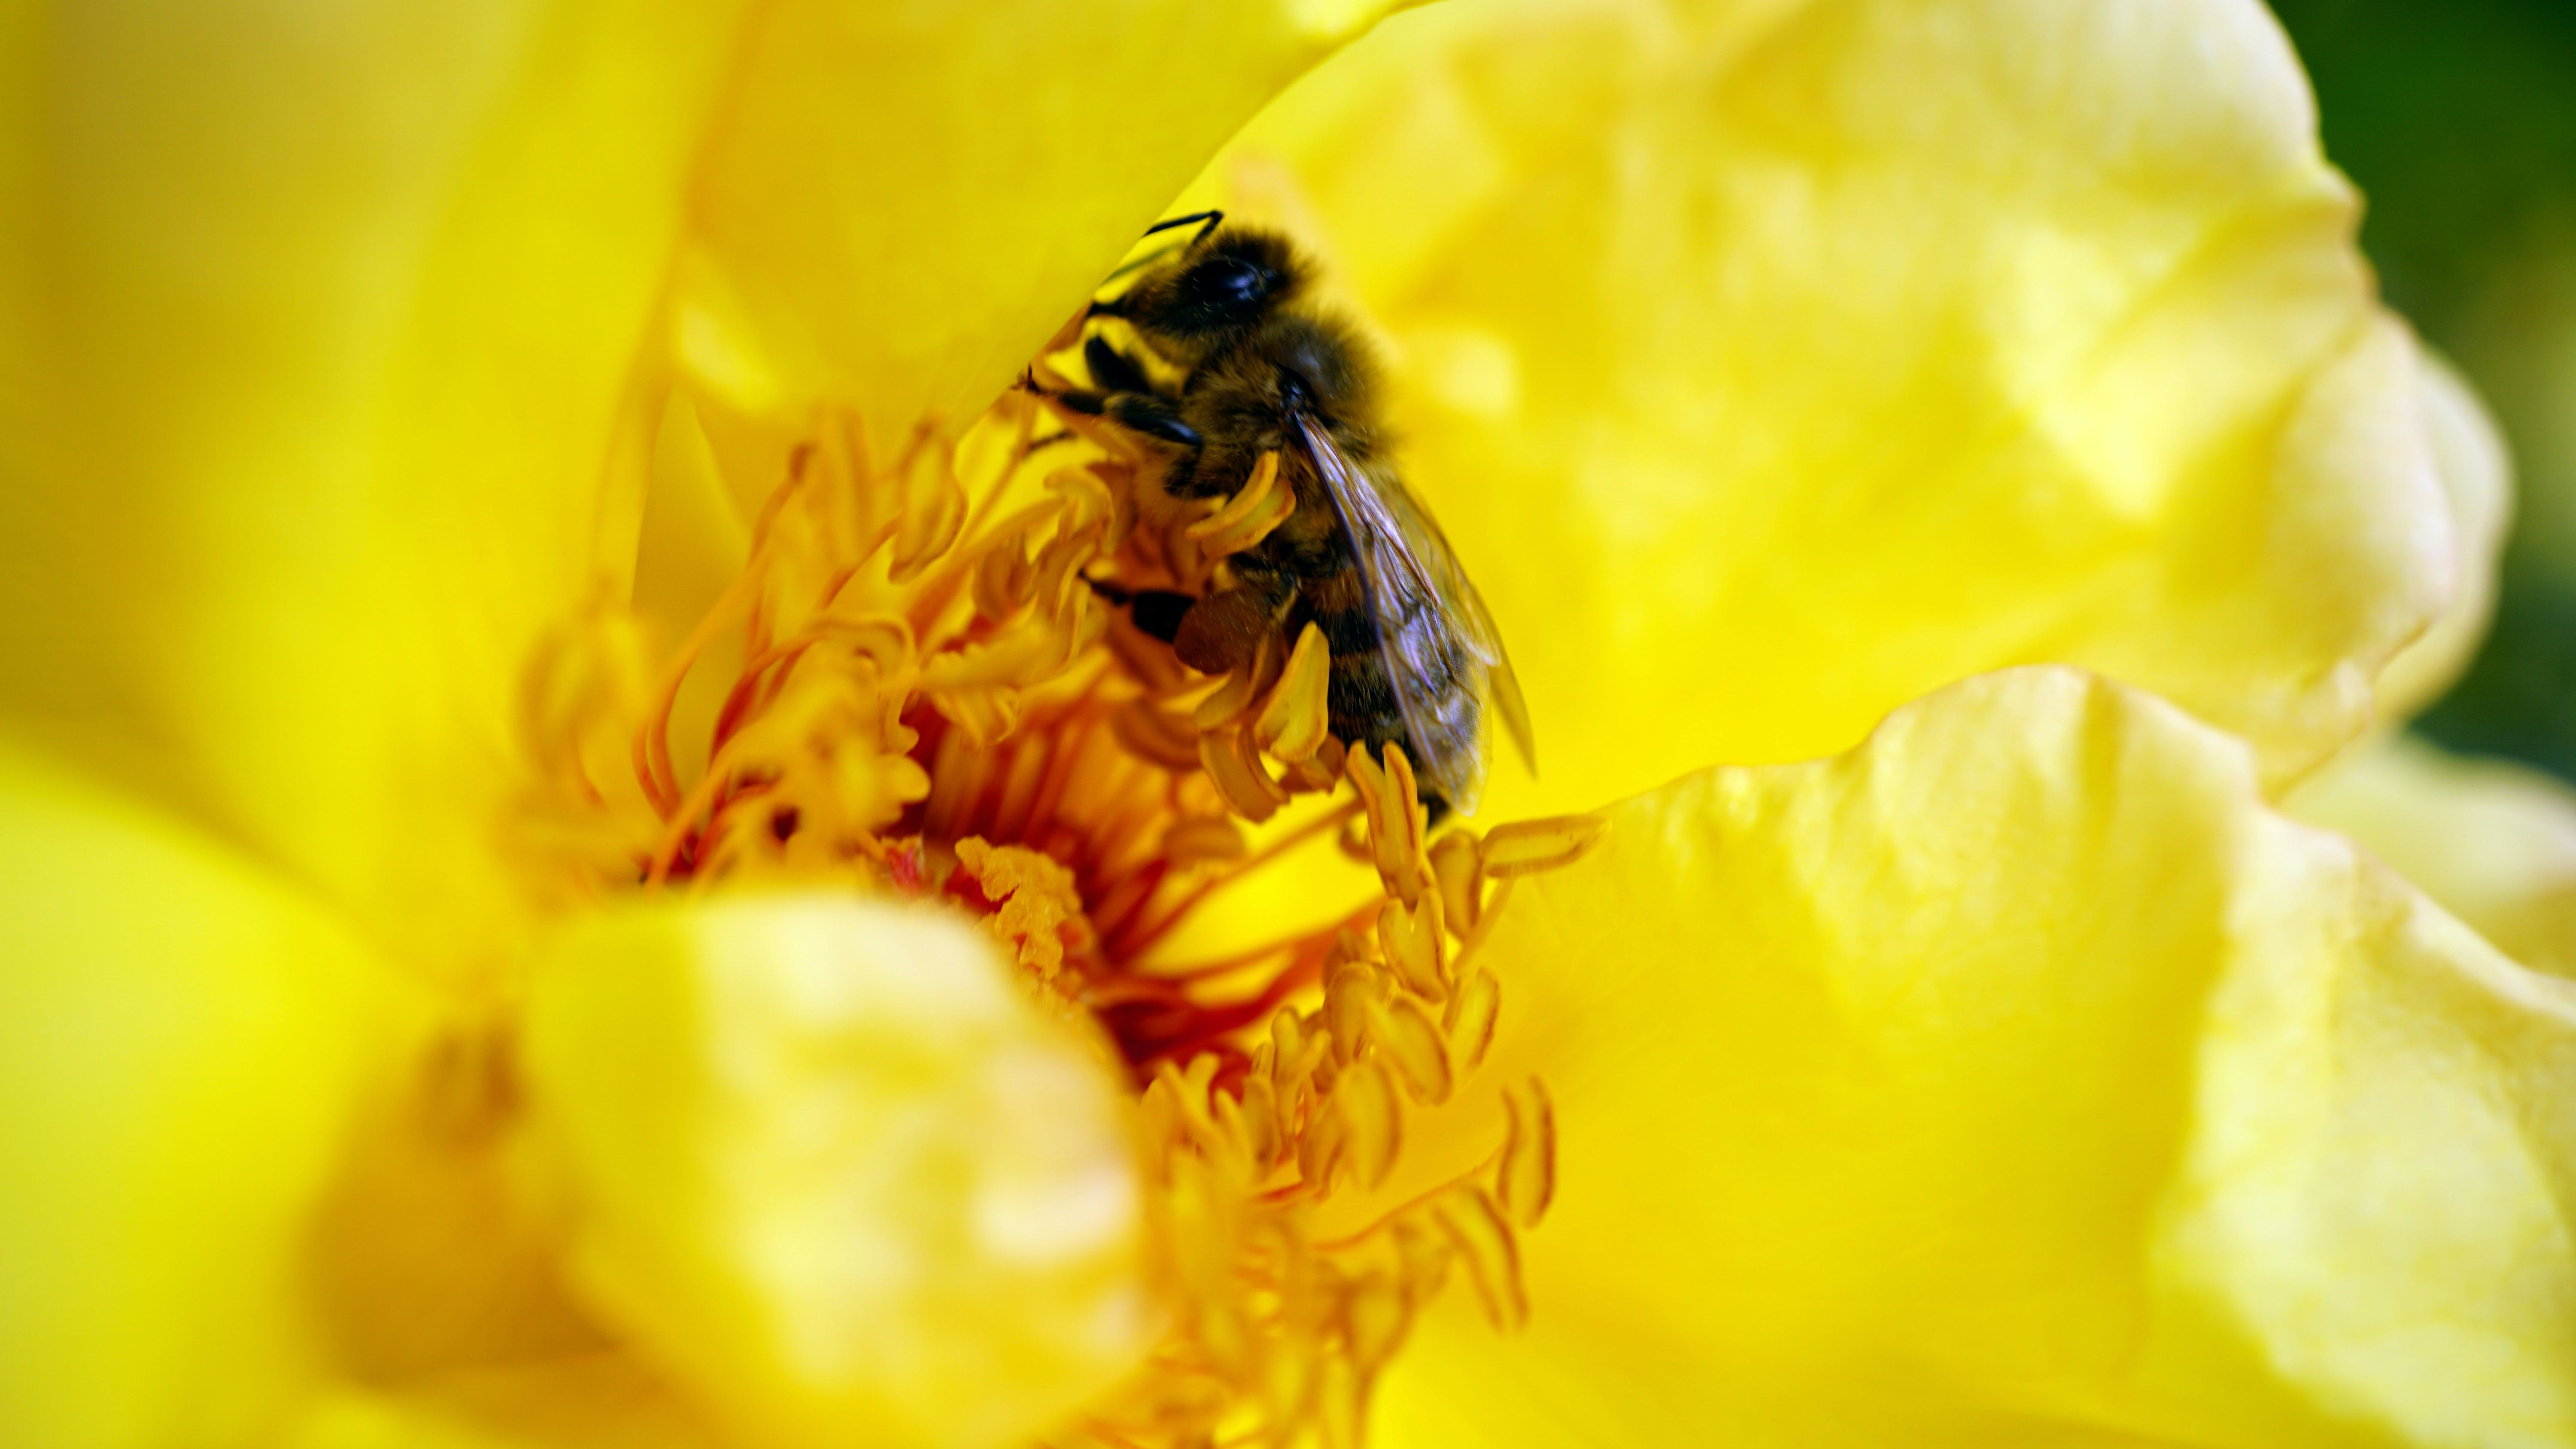 Honeybee on Yellow Petaled Flower